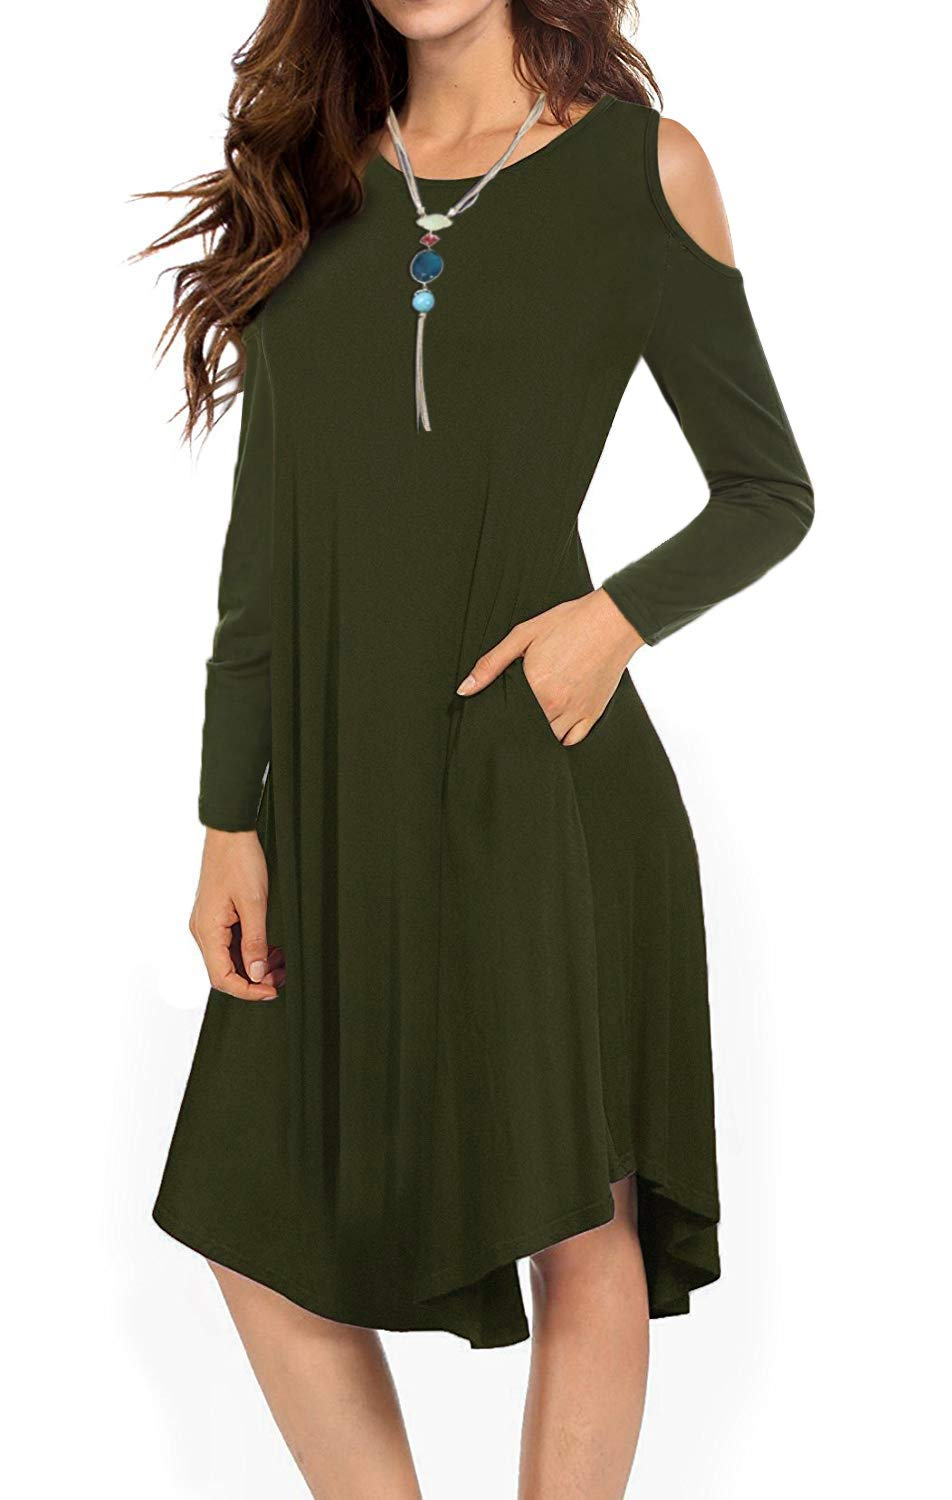 VERABENDI Women's Casual Cold Shoulder Midi Dress Long Sleeve Swing Dress with Pockets Army Green Small